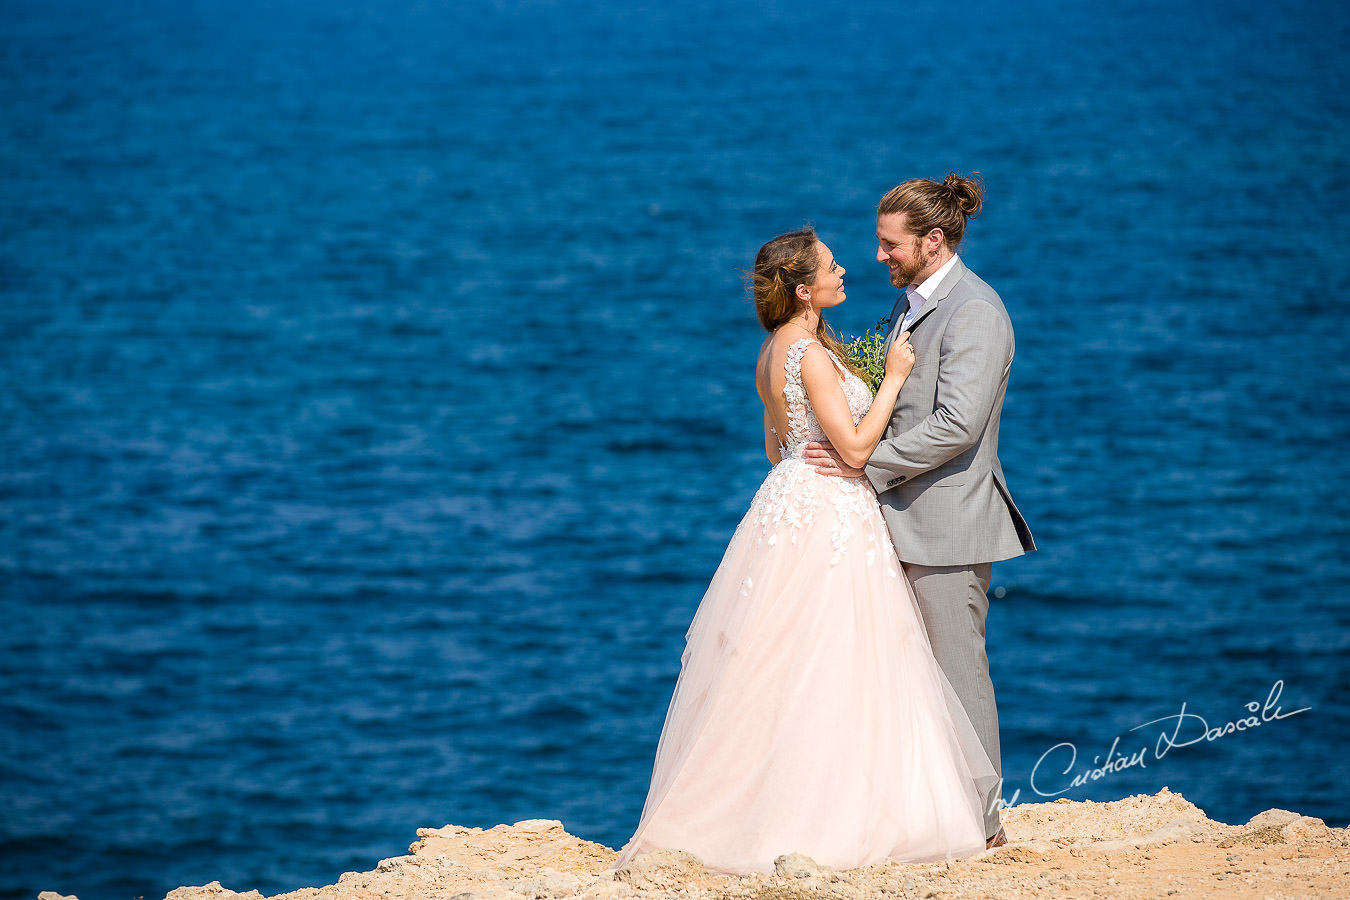 Bride and groom posing on the beach, moments captured at a Shamanic Wedding Ceremony by Cyprus Wedding Photographer Cristian Dascalu.